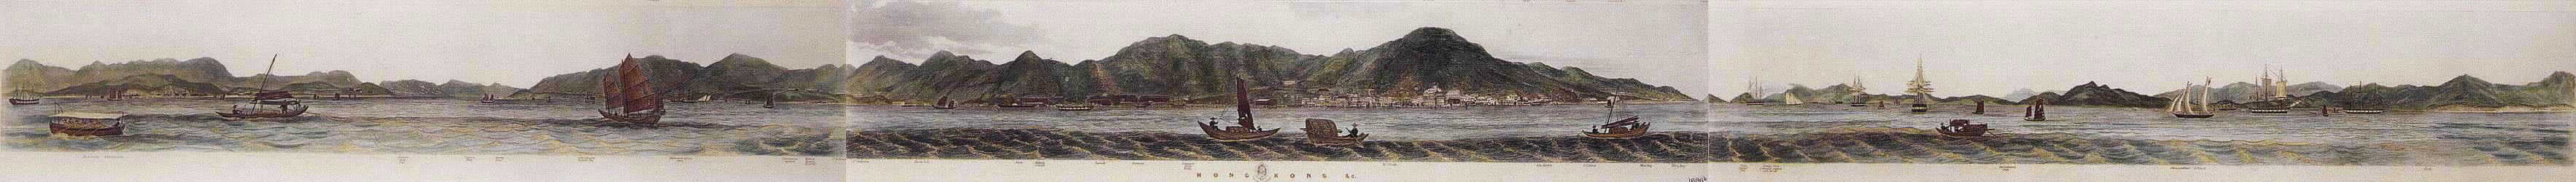 Hong Kong. As seen from the Anchorage.  Drawn by Lieut. L.G. Heath of HMS Iris 1846.